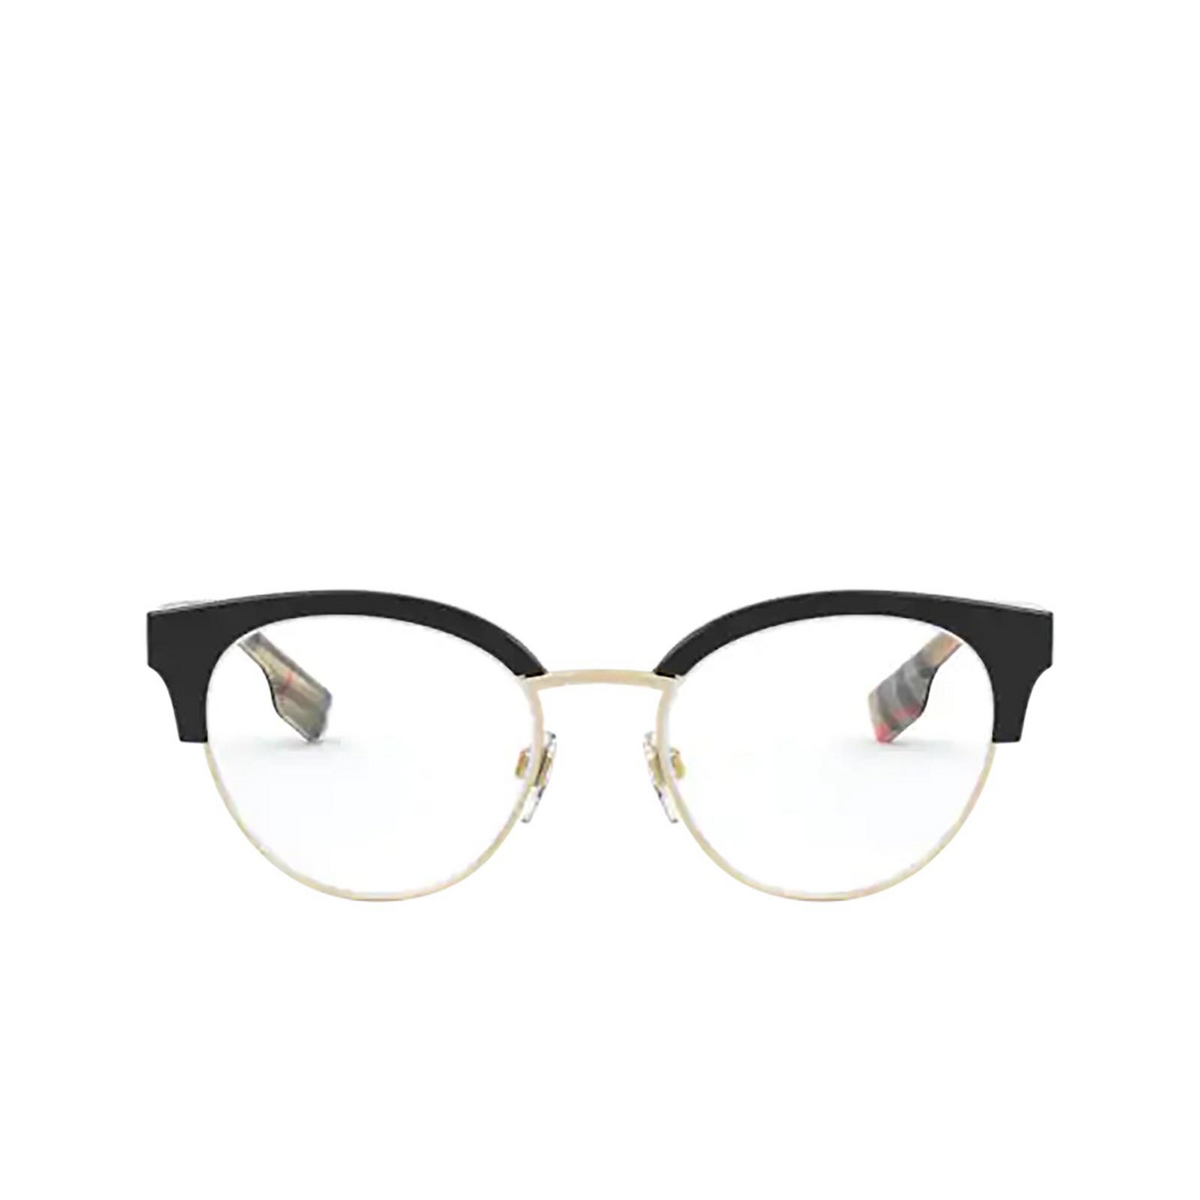 Burberry® Round Eyeglasses: Birch BE2316 color Black / Pale Gold 3773 - front view.